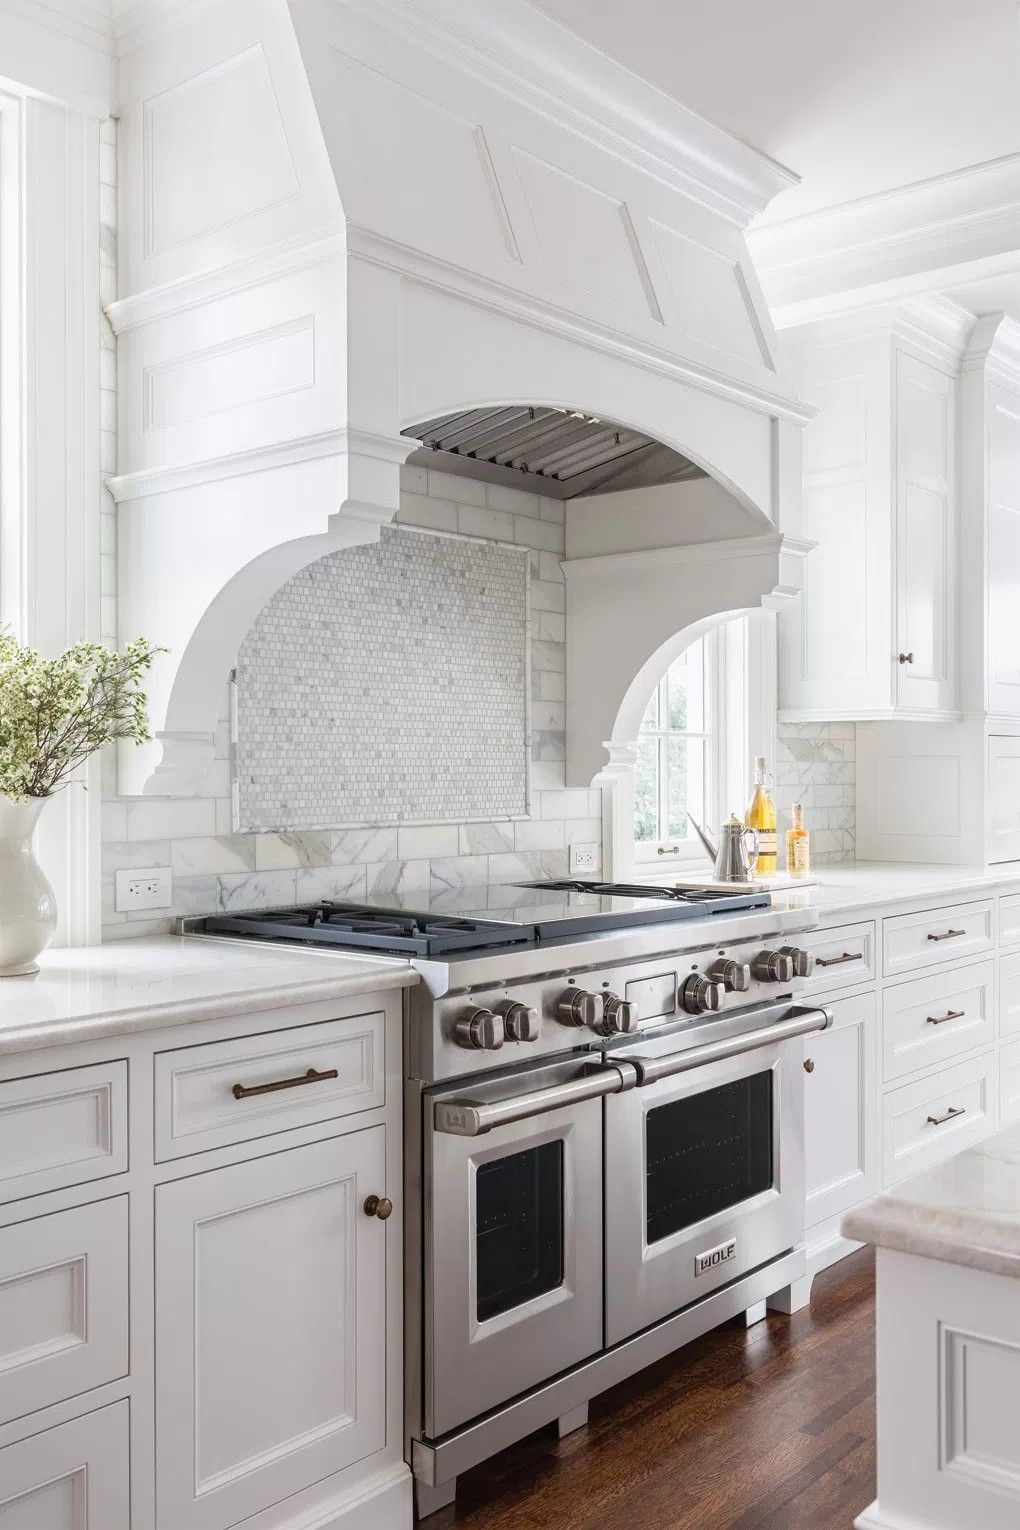 Midwest Home, hood with backsplash | Kitchen Backsplash | Pinterest ...